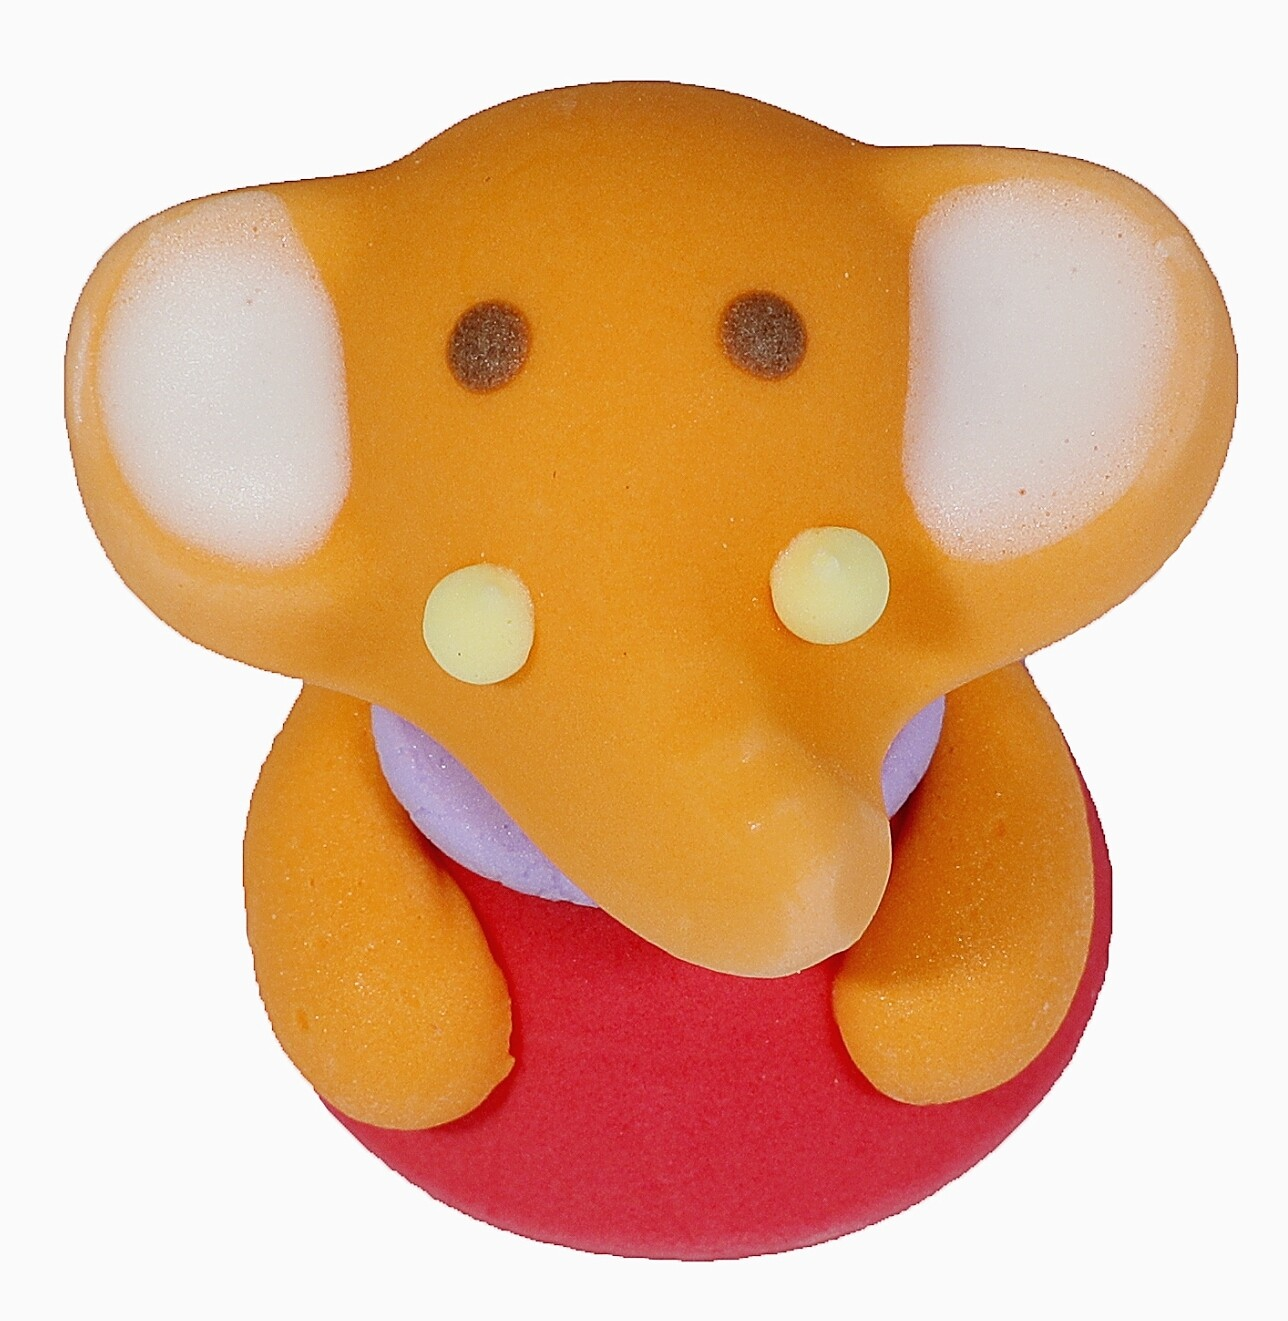 Adorable Elephant (Baker's Sugar)